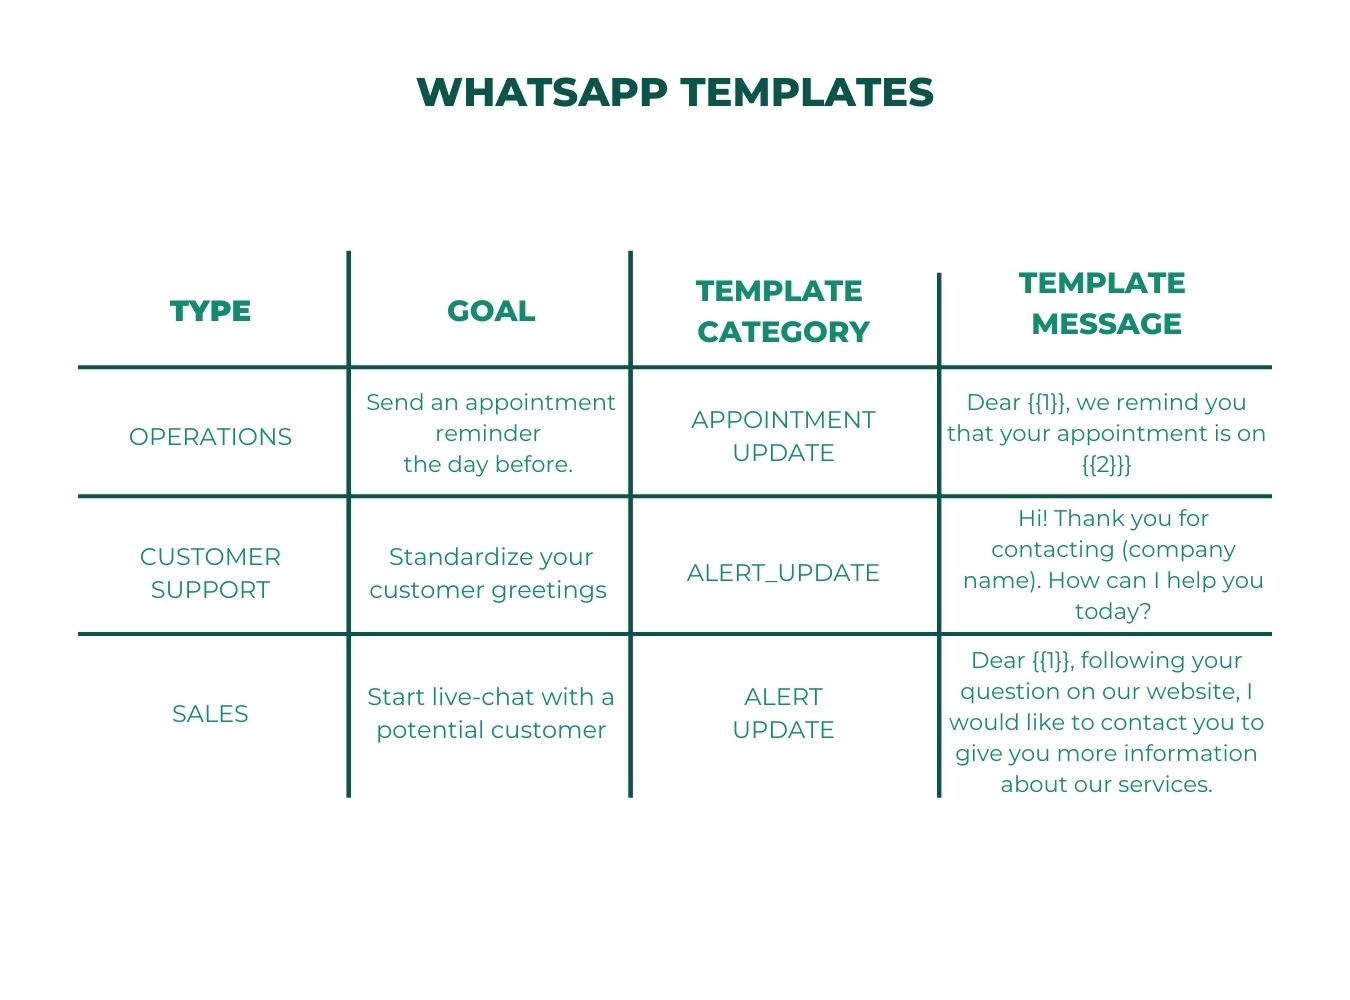 WhatsApp templates for ecommerce